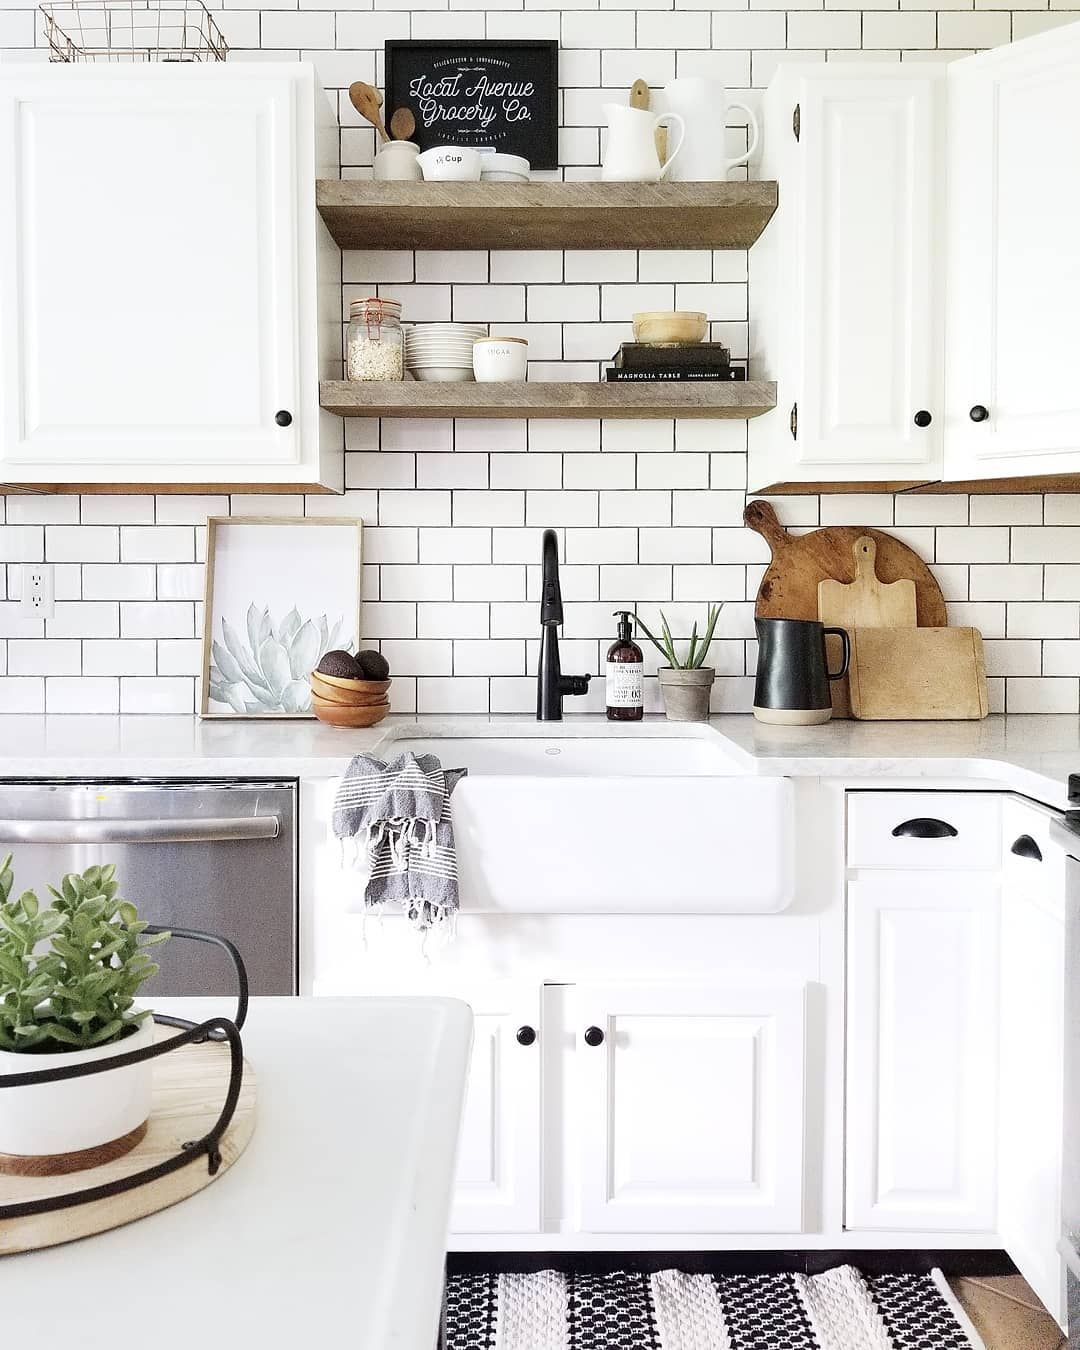 Instagram  csimple summer vibes  new plant by the sink avacados in bowl doing double duty as decor and simple throw rug swap with home    also is marie kondo killing collecting homes interiors pinterest rh